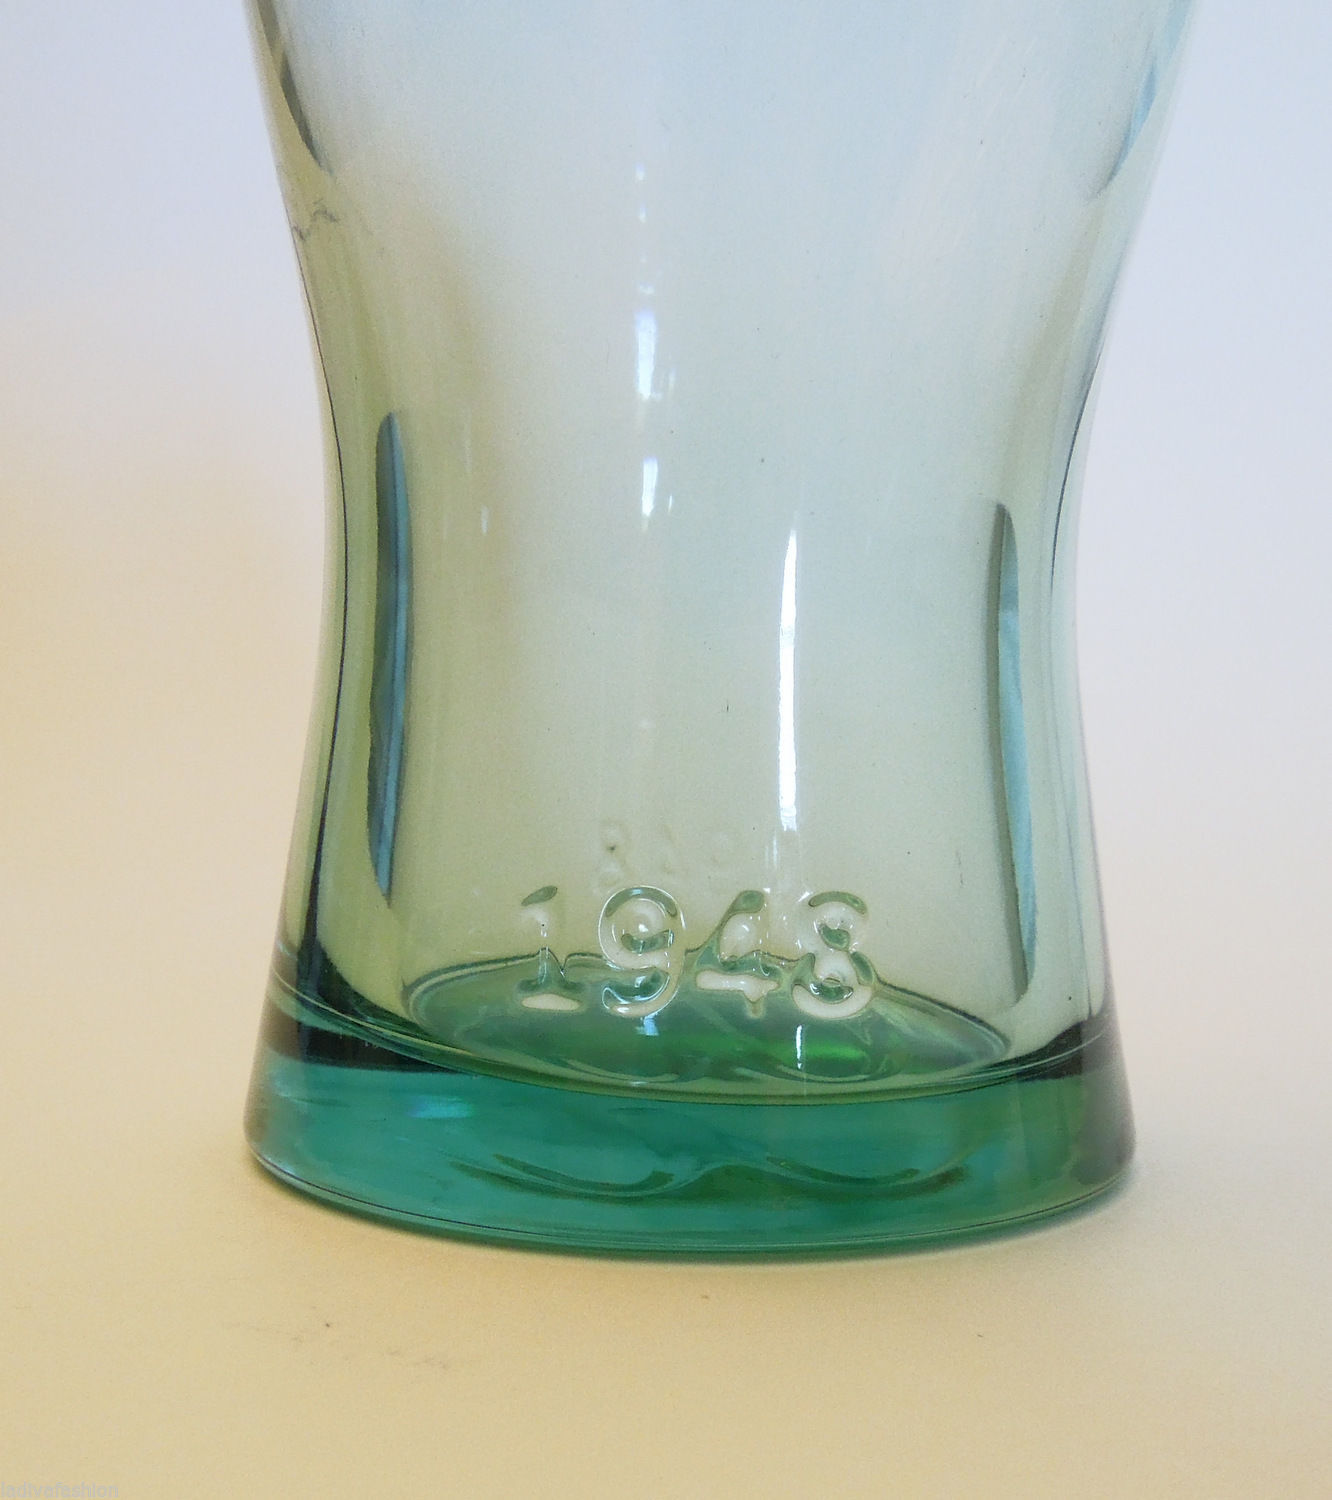 McDonald's Collectible Retro Drinking Glass - 1948 Green